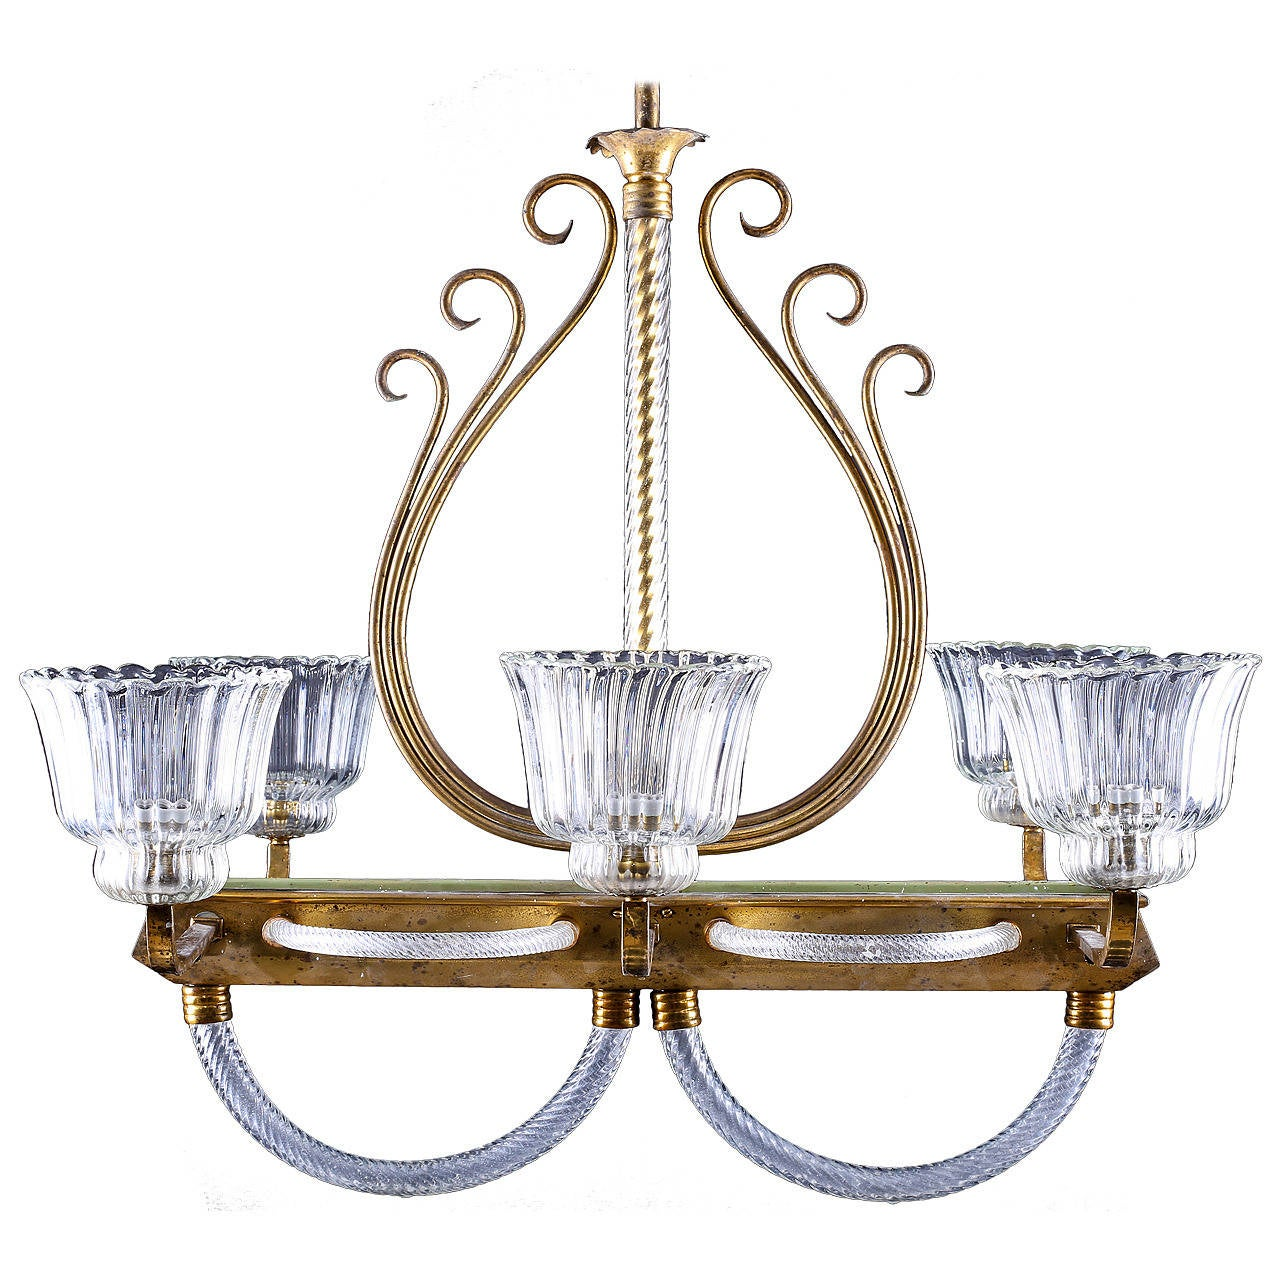 Venetian Brass and Clear Murano Glass Chandelier by Barovier and Toso, 1930s